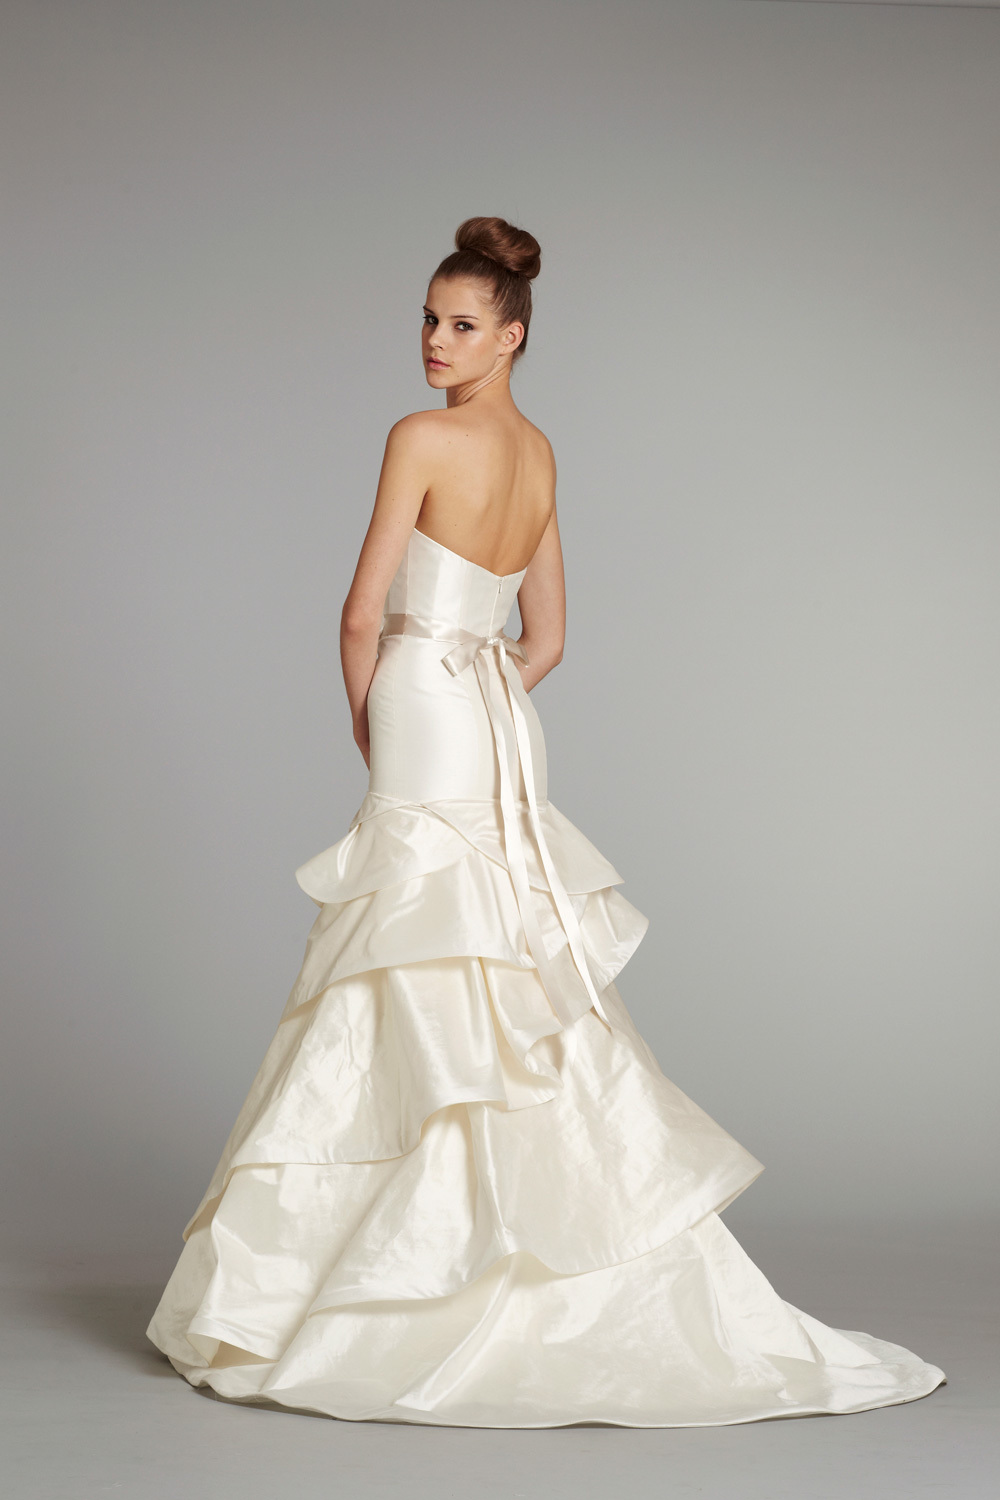 Bridal-gown-wedding-dress-jlm-hayley-paige-fall-2012-pearl-back.full